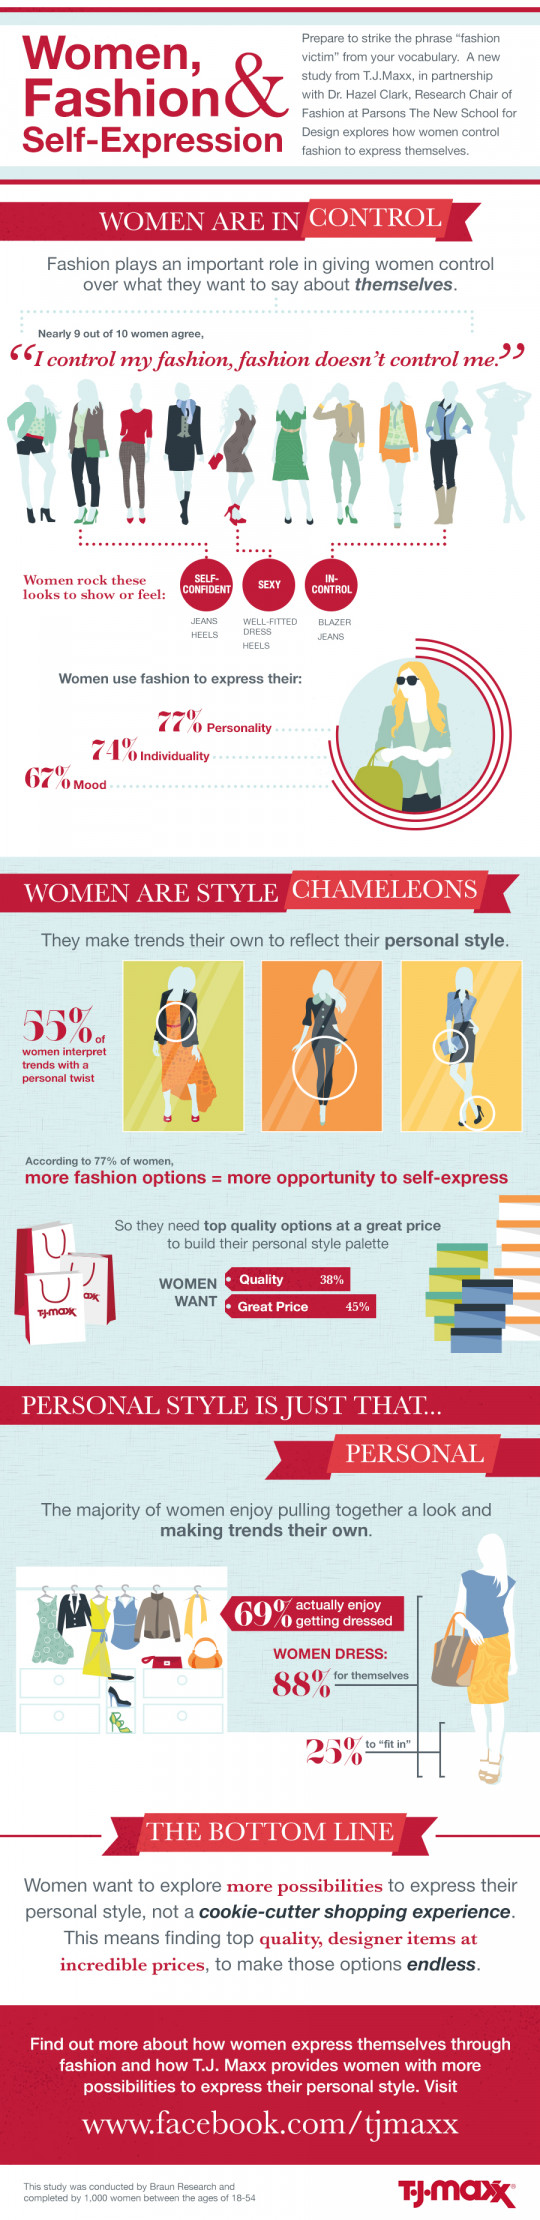 Women, Style, & Self-Expression